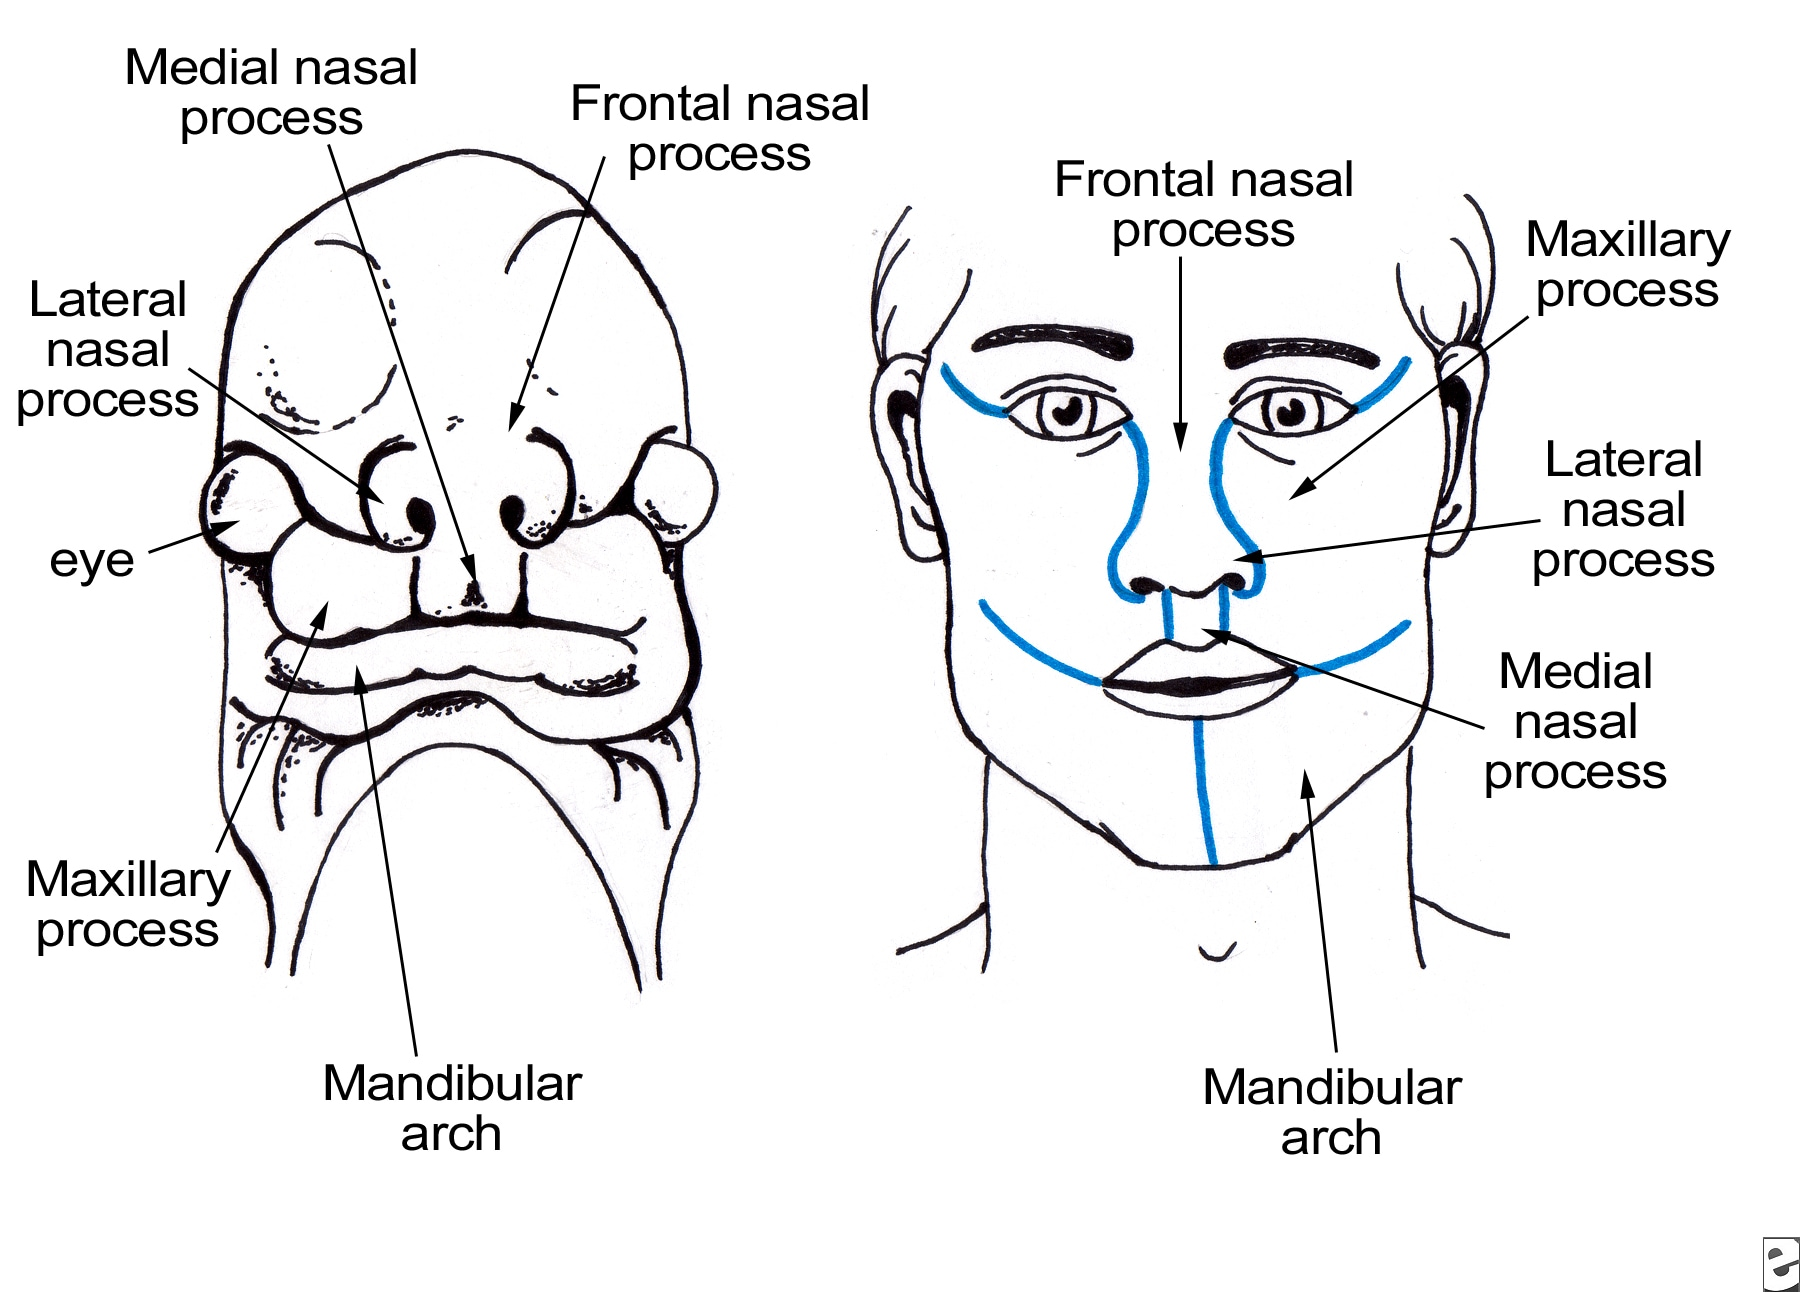 ORAL & MAXILLO-FACIAL SURGERY: Nasolacrimal System Anatomy